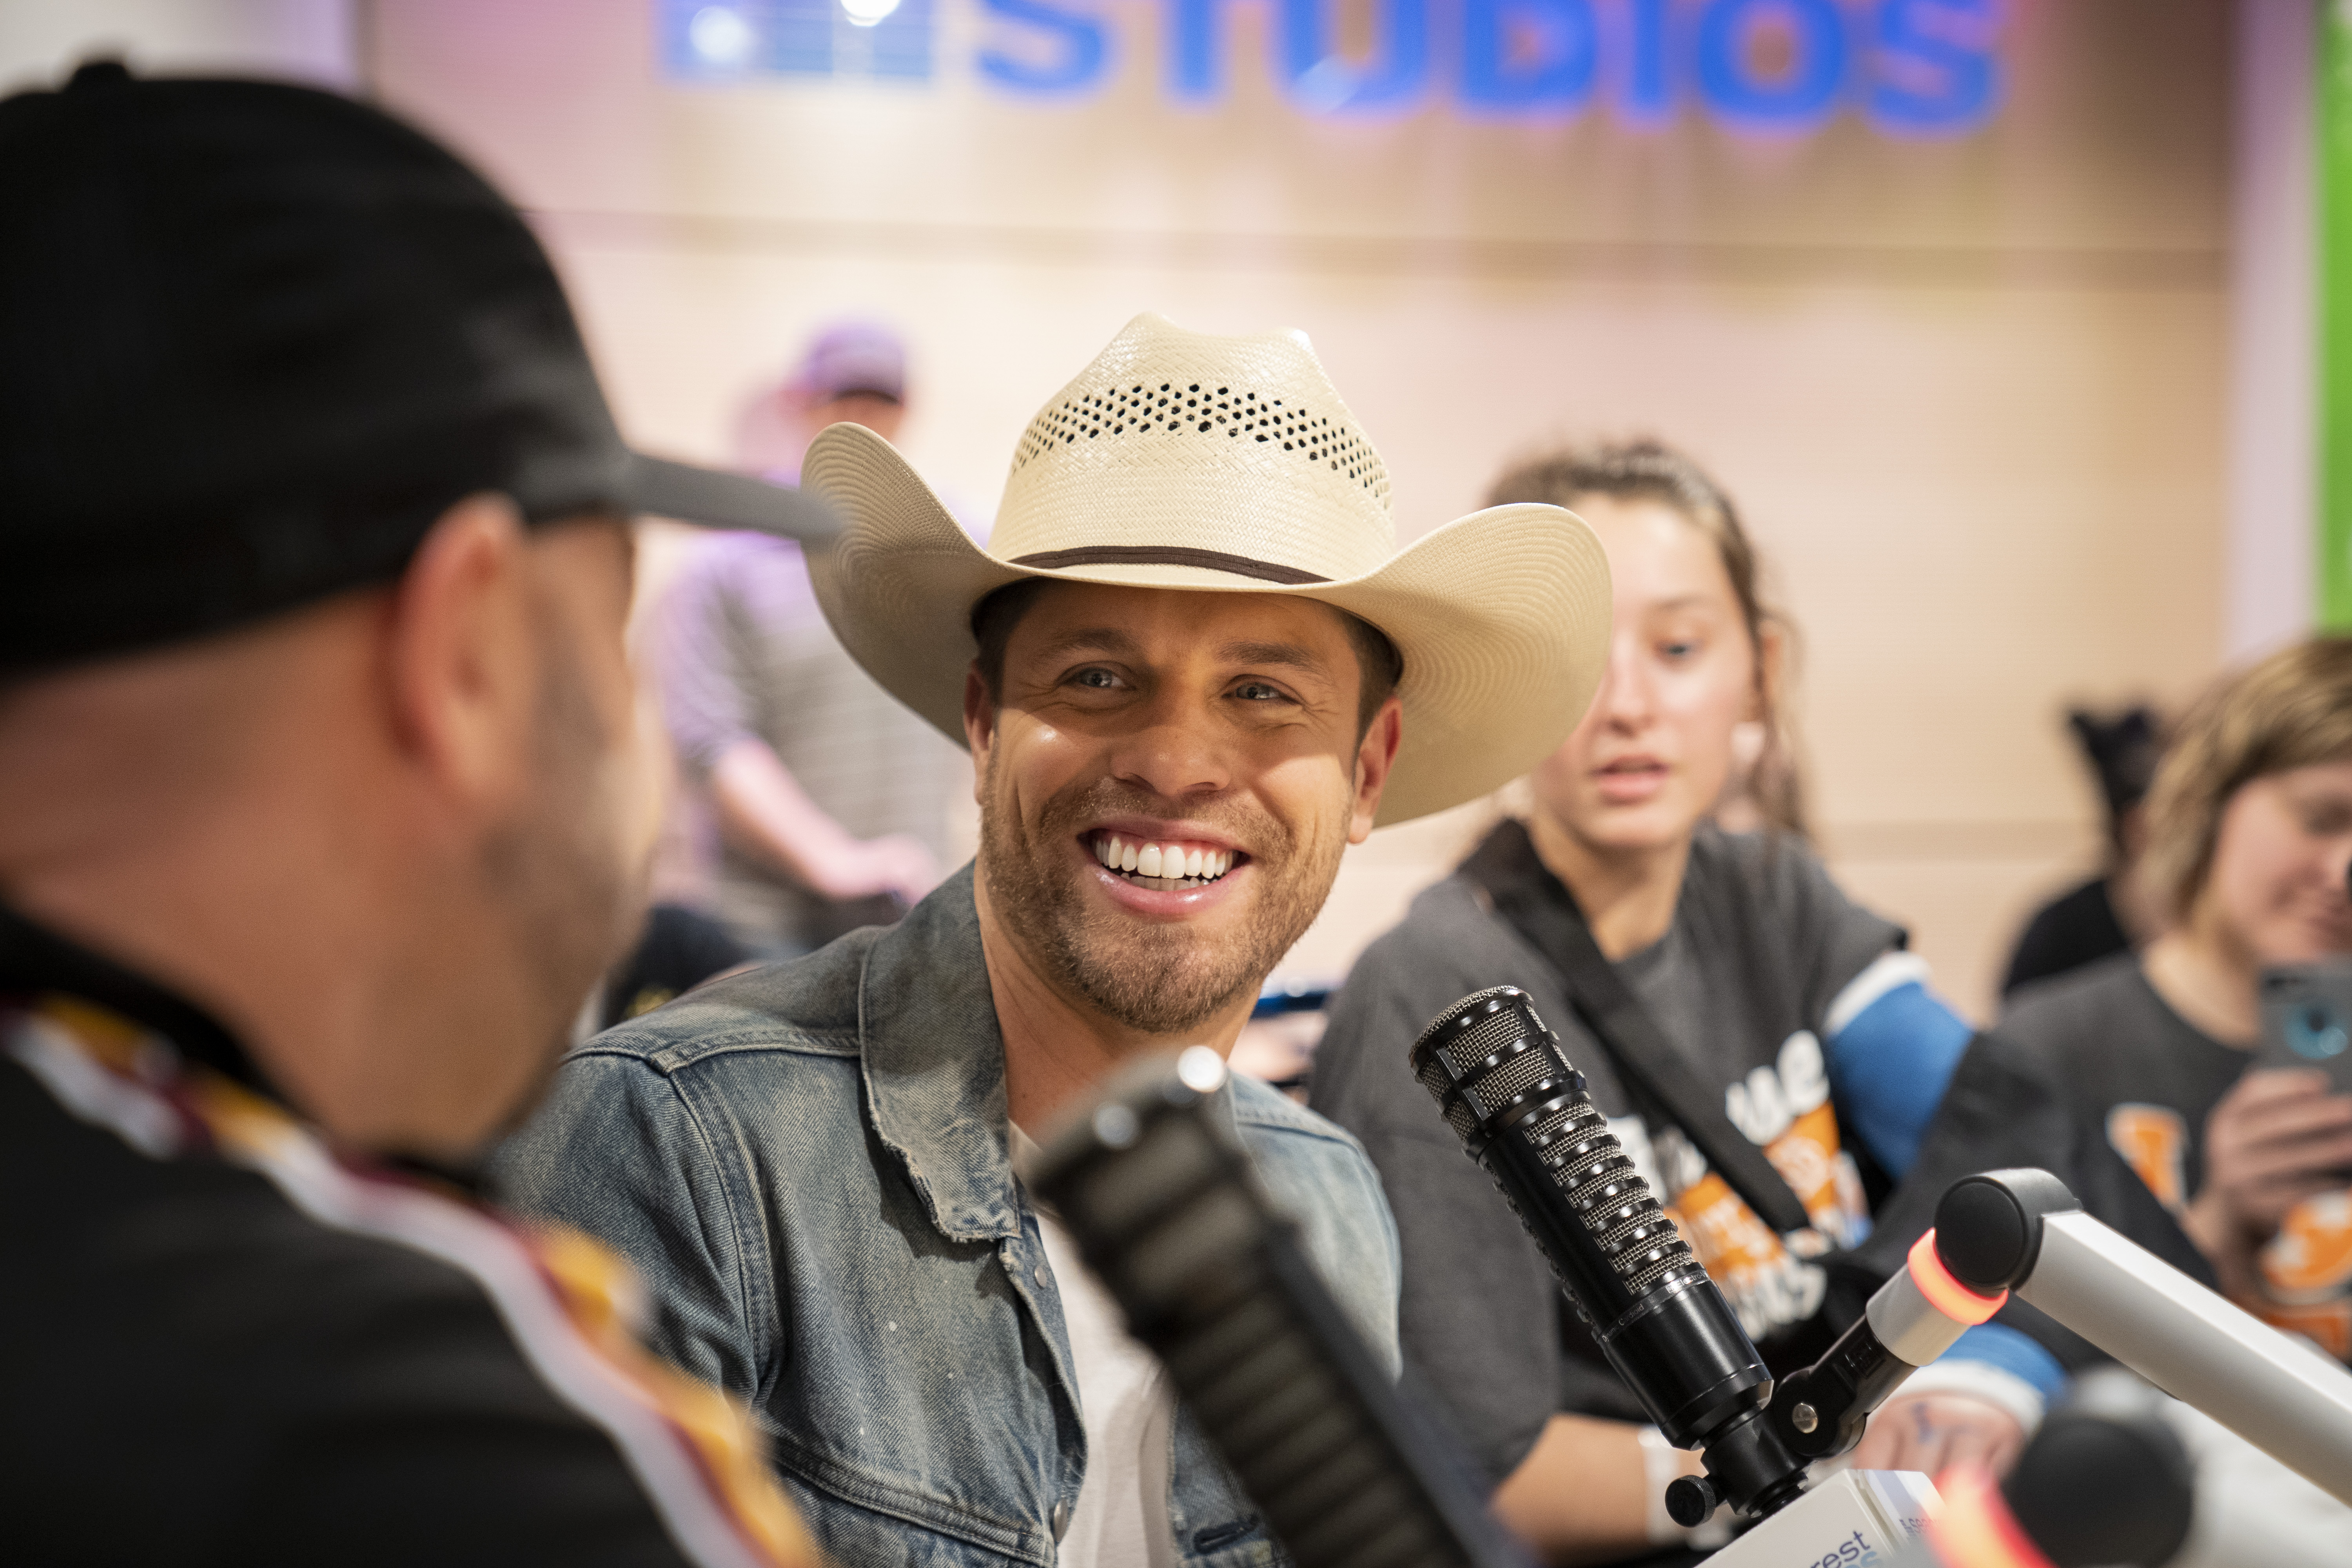 CMT Films Hot 20 Countdown With Dustin Lynch In Seacrest Studios